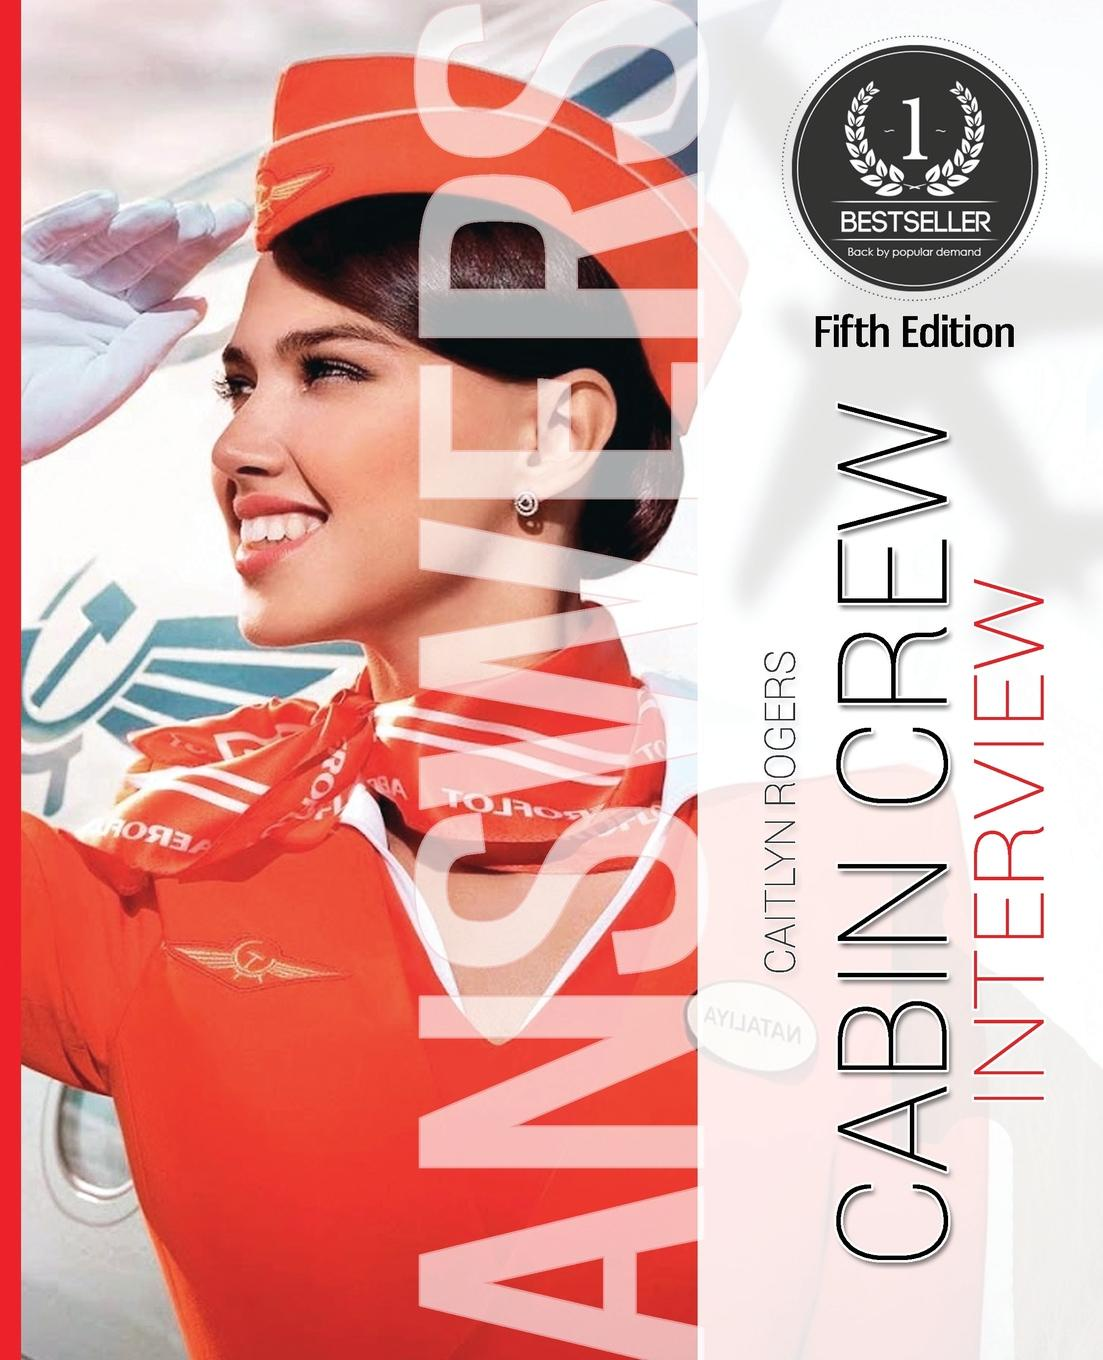 Caitlyn Rogers Cabin Crew Interview Questions . Answers. Pass The Final Interview With Ease how2become cabin crew interview questions and answers sample interview questions and answers for the cabin crew interview